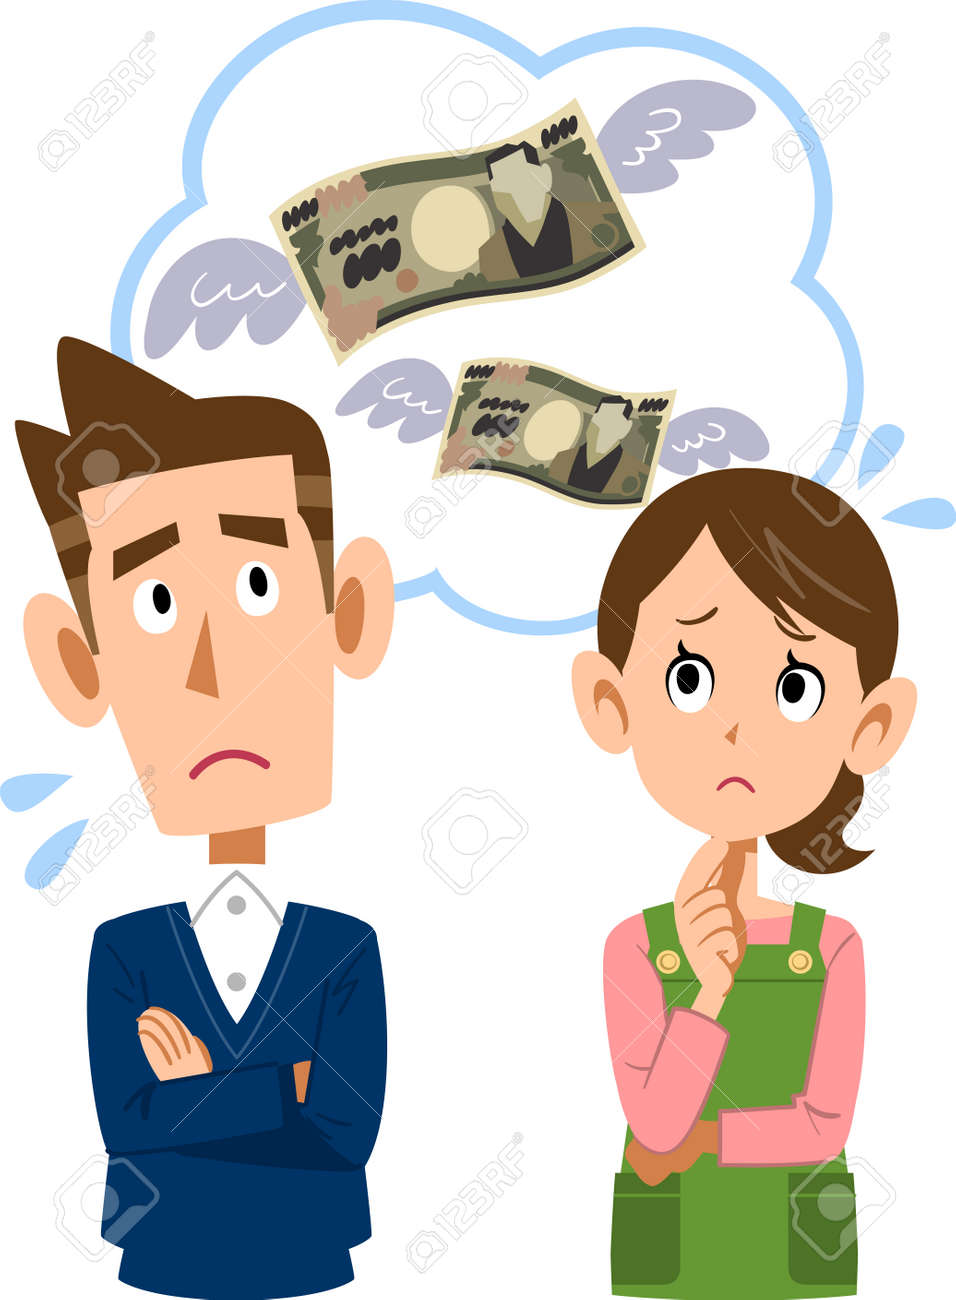 Husband and wife make money wasted spending household. - 85536614